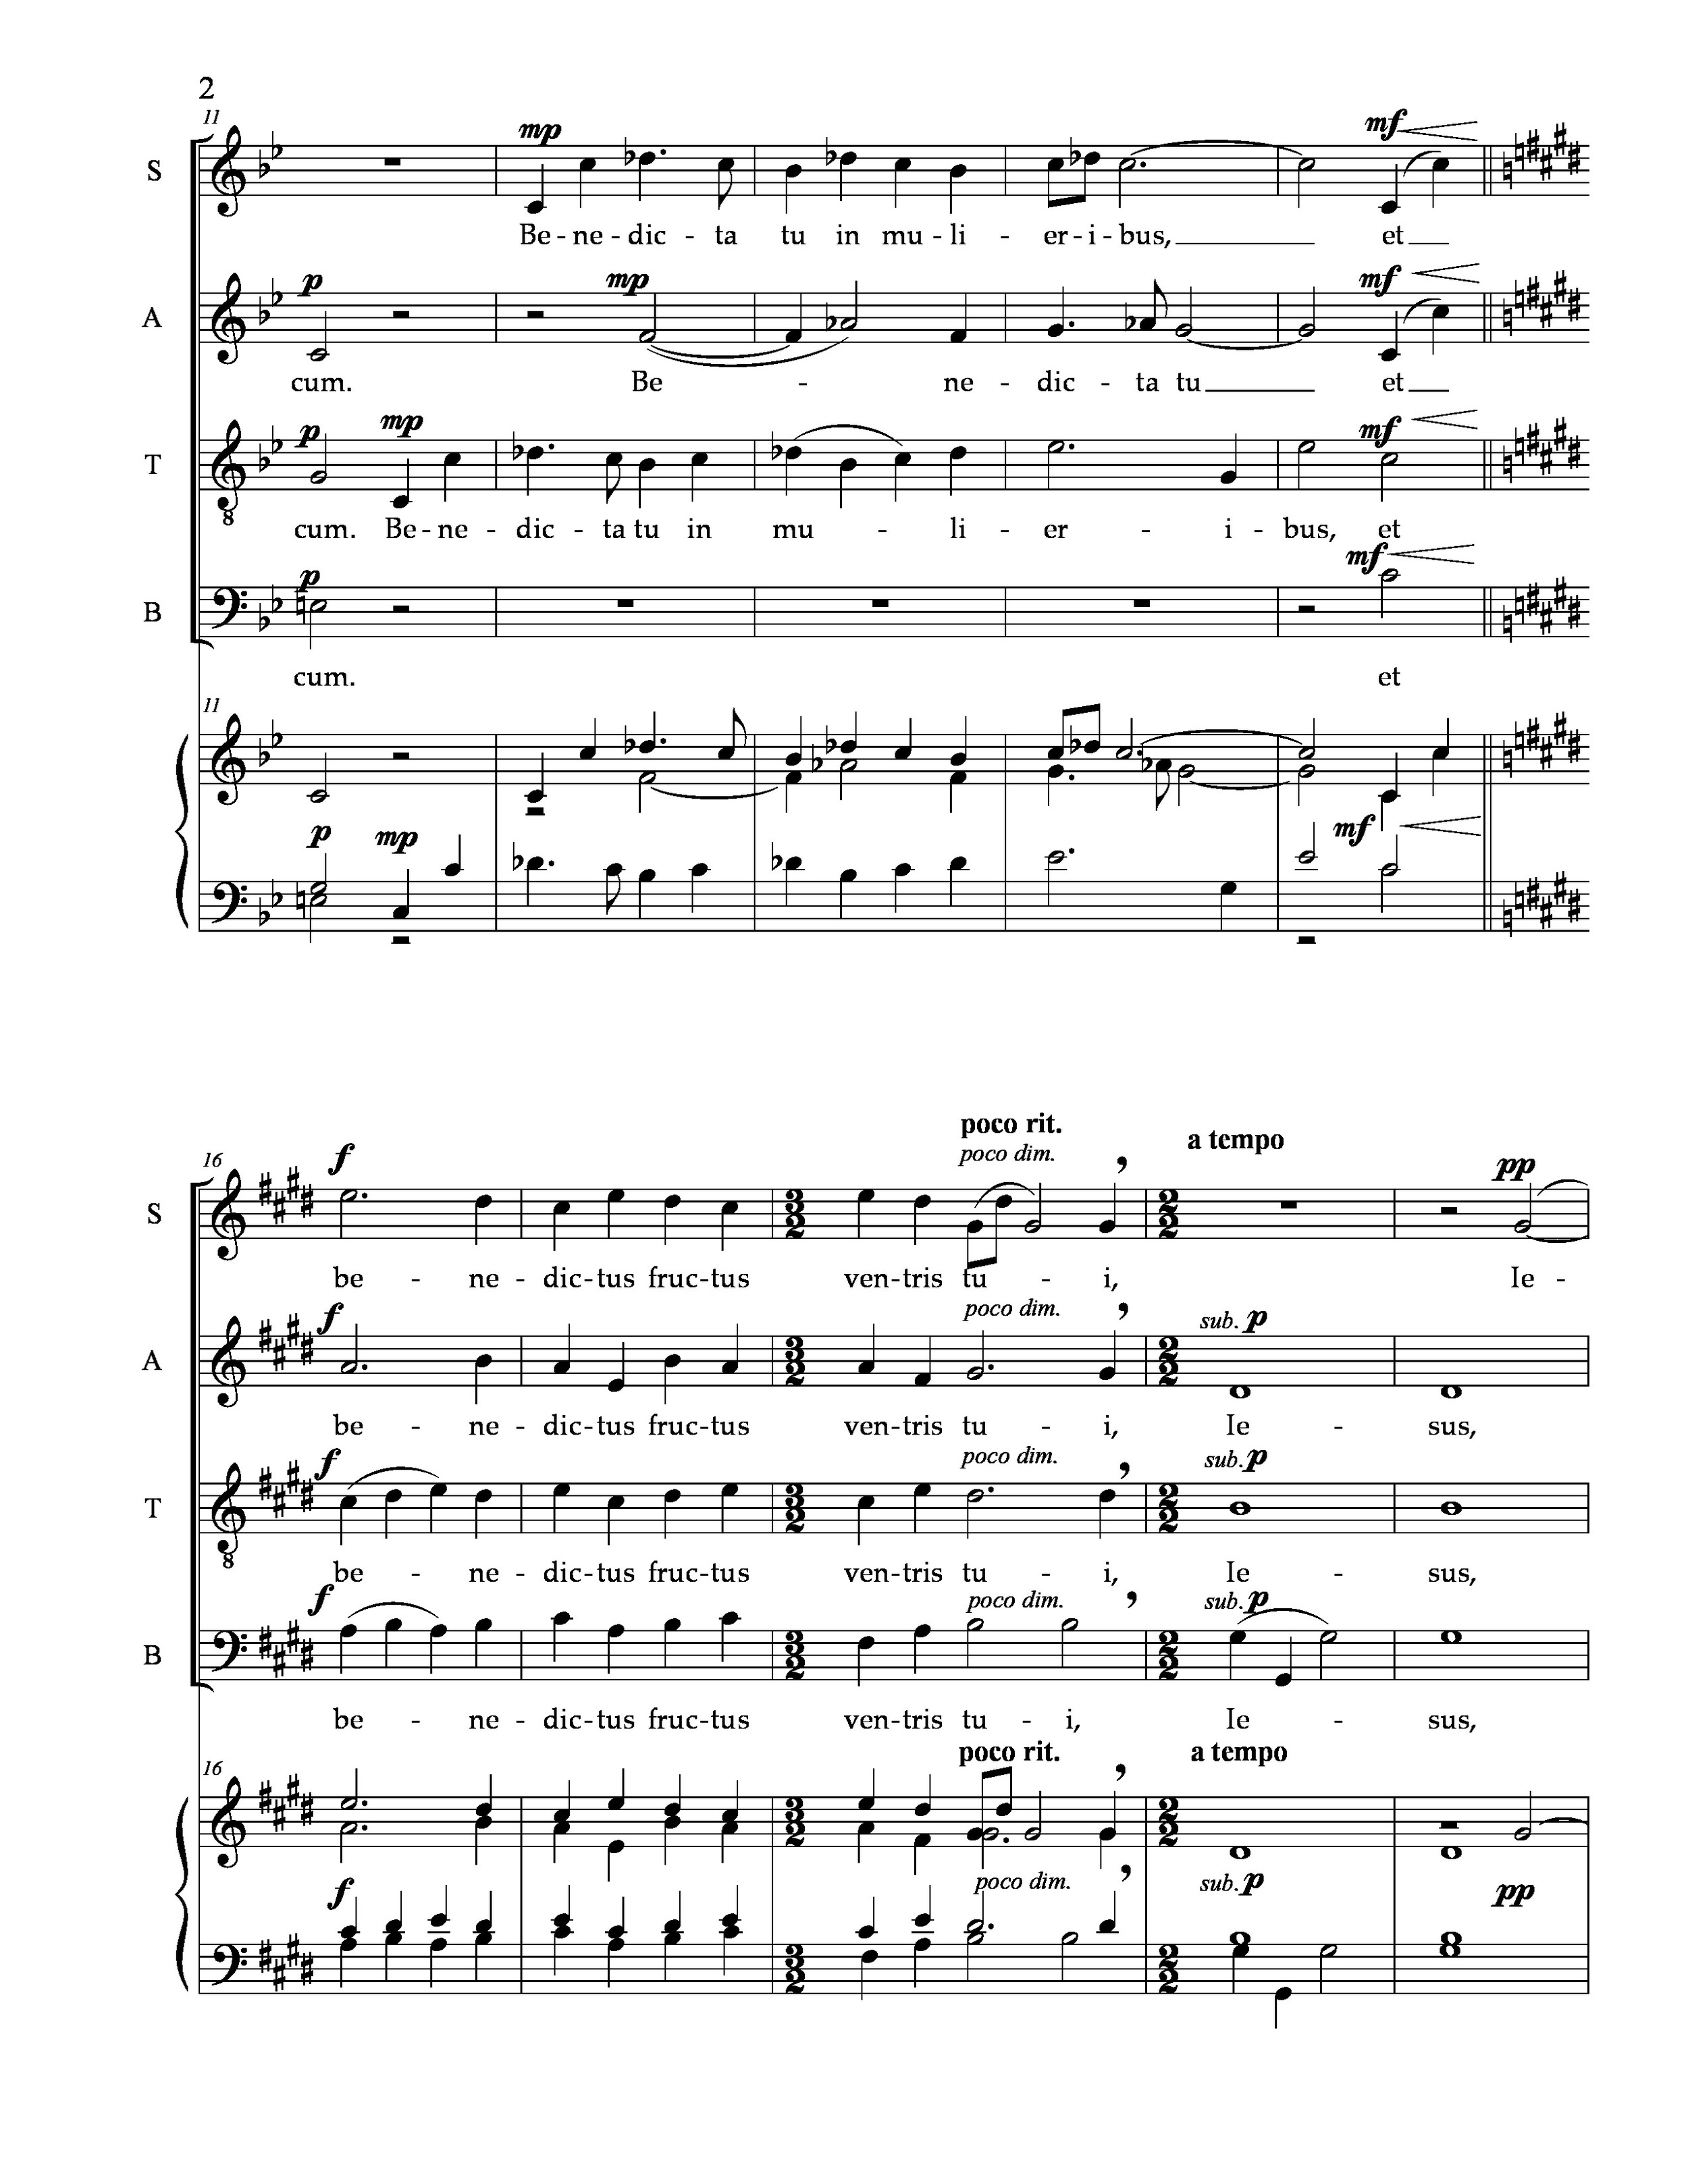 Ave Maria final-page-1.jpg